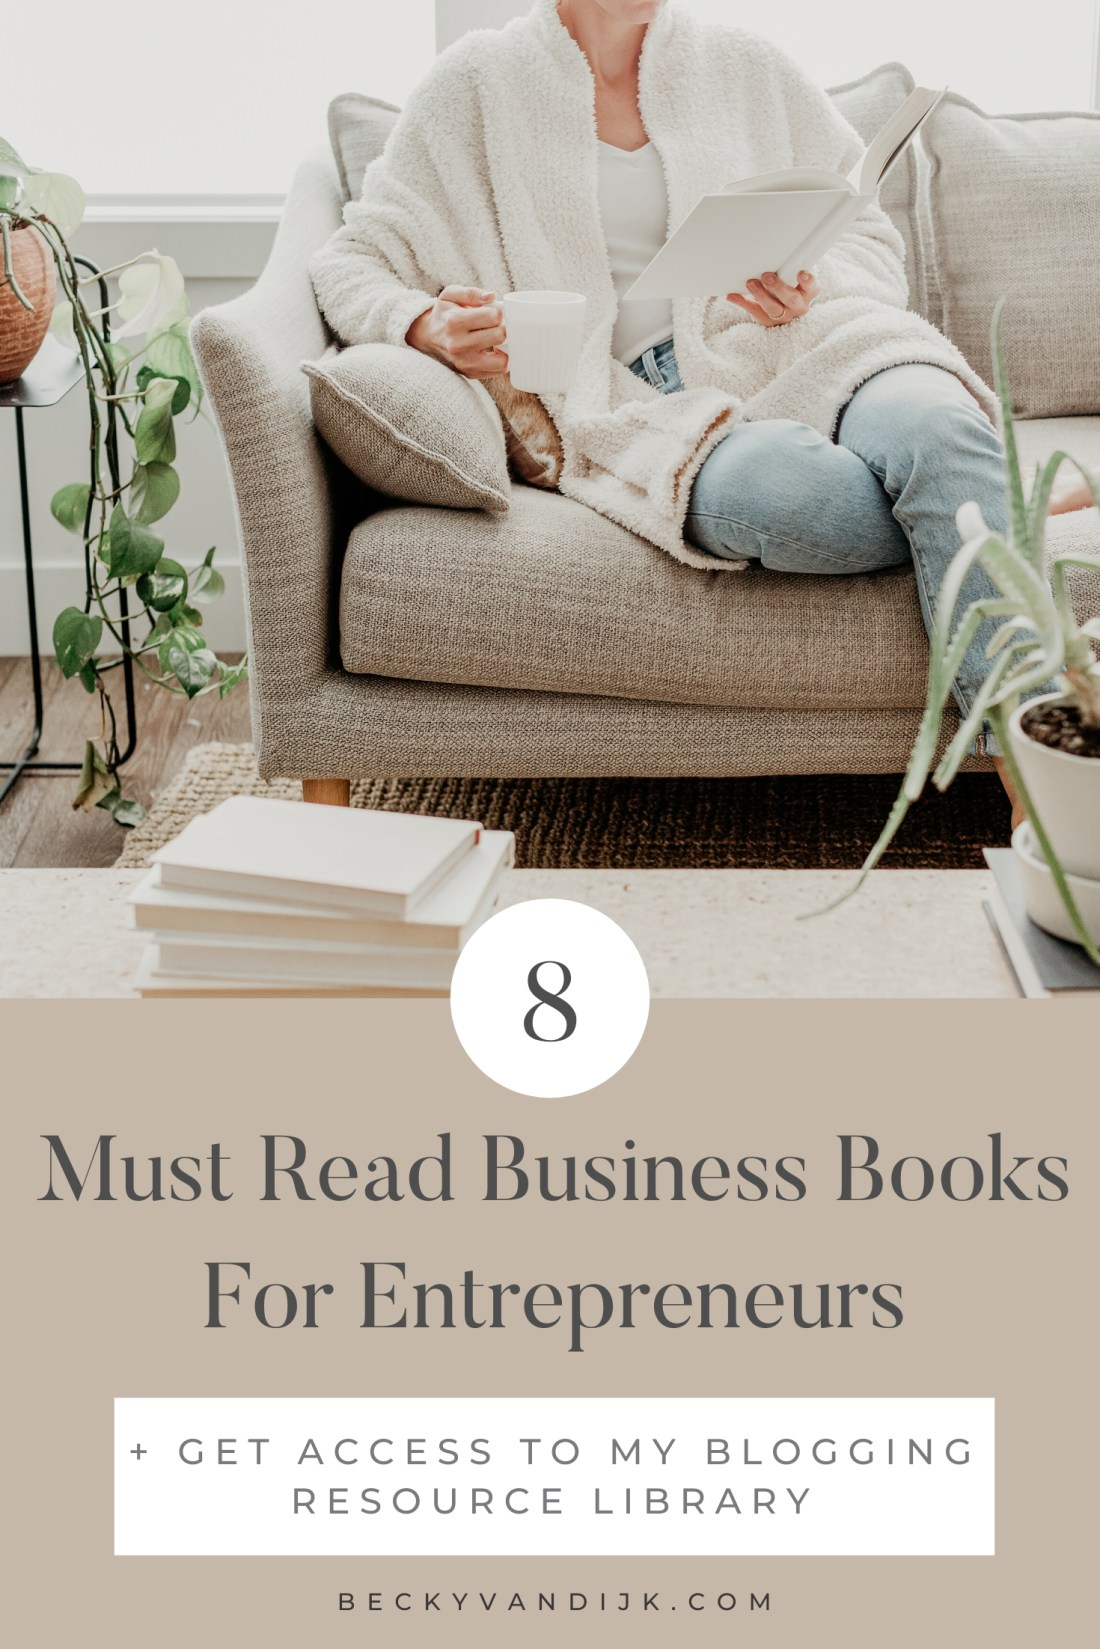 must read business books for entrepreneurs pinterest cover